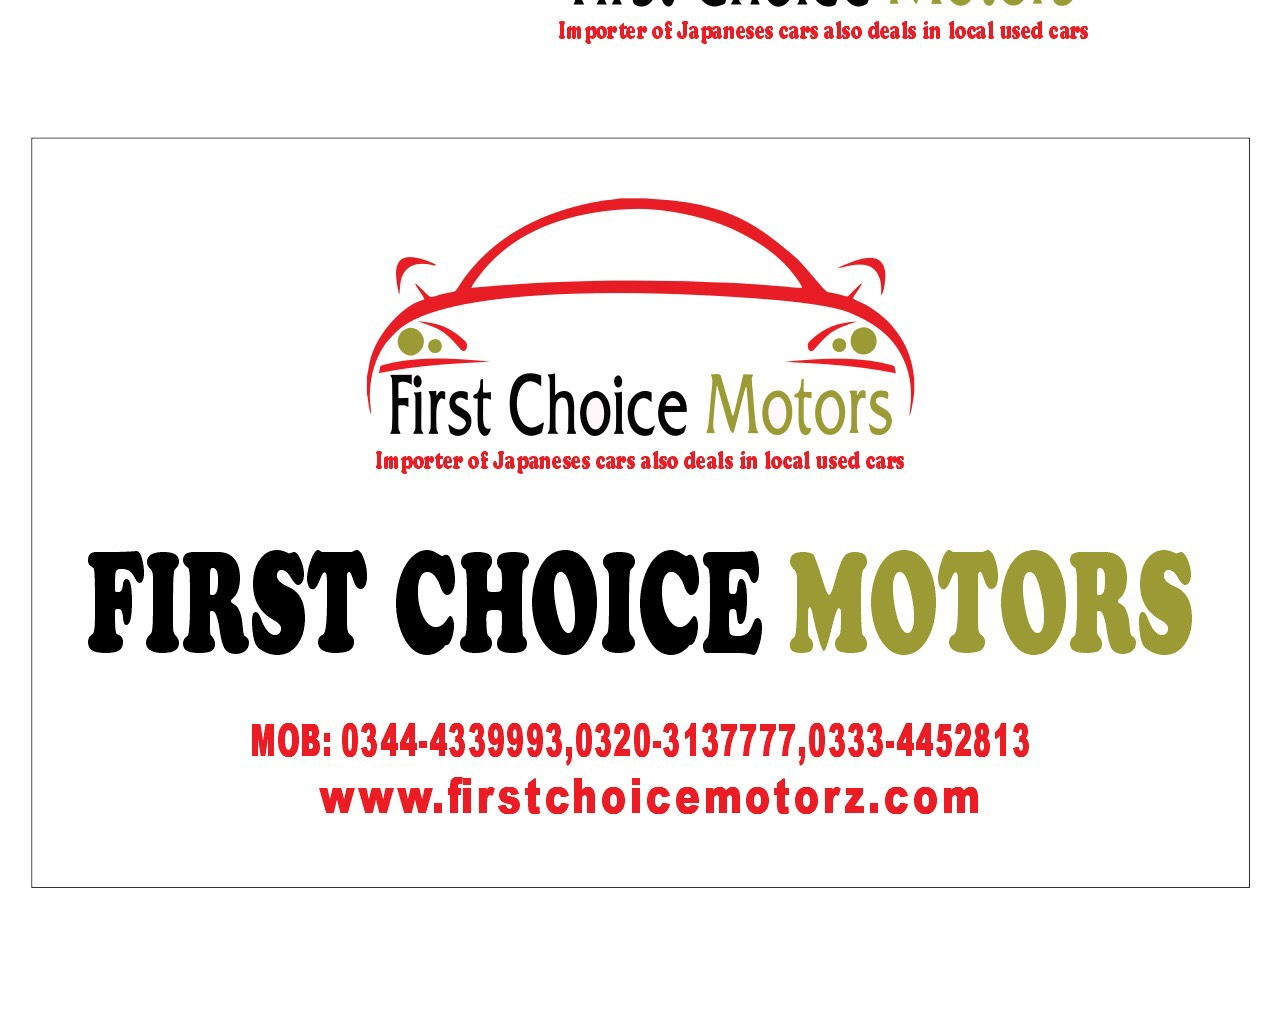 First Choice Motors